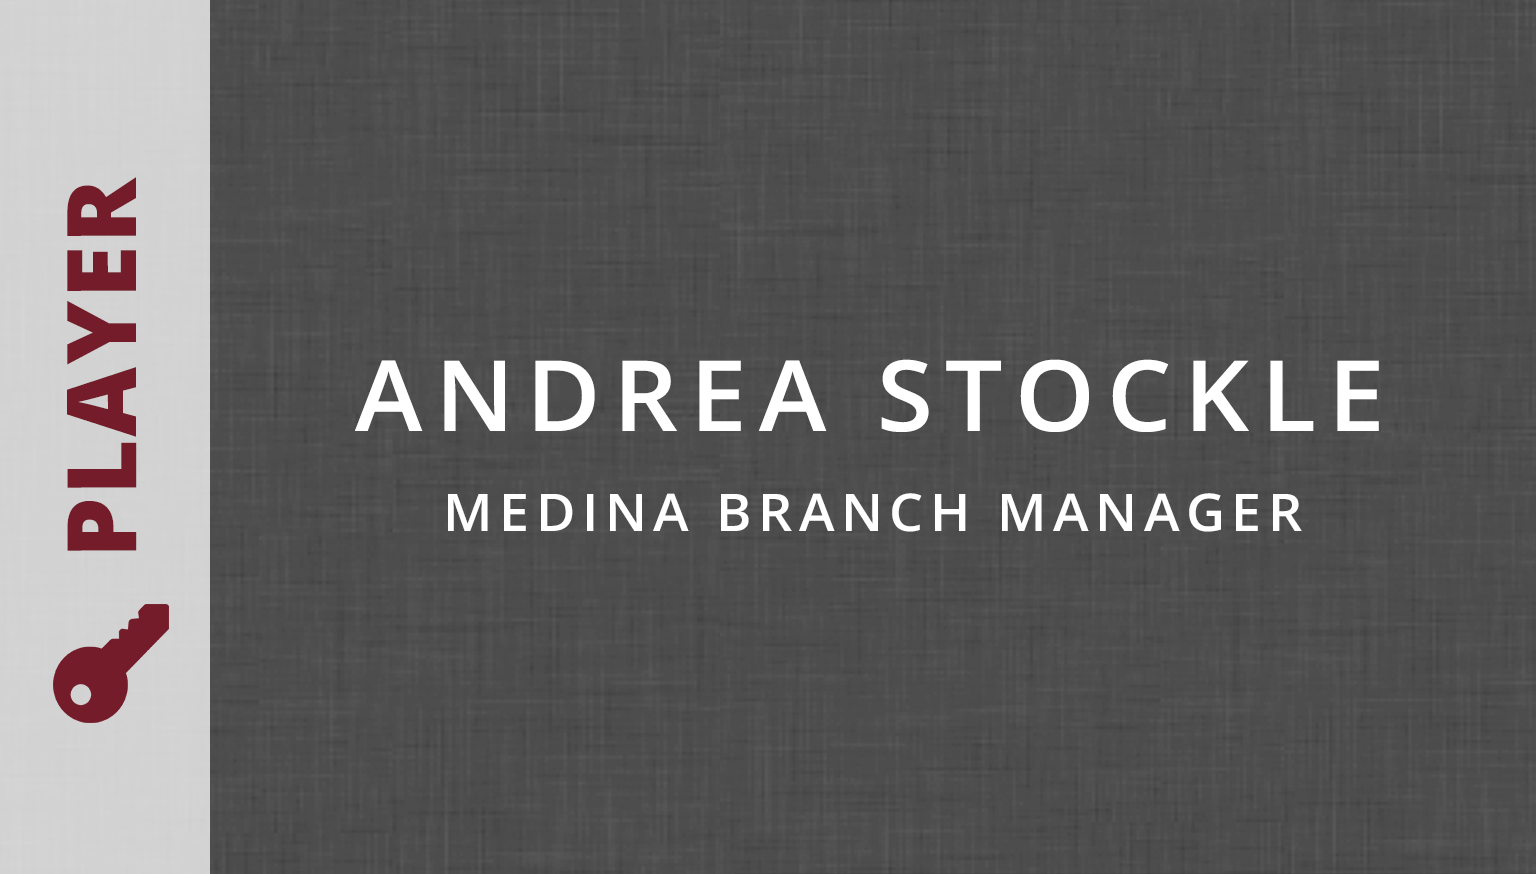 Andrea Stockle